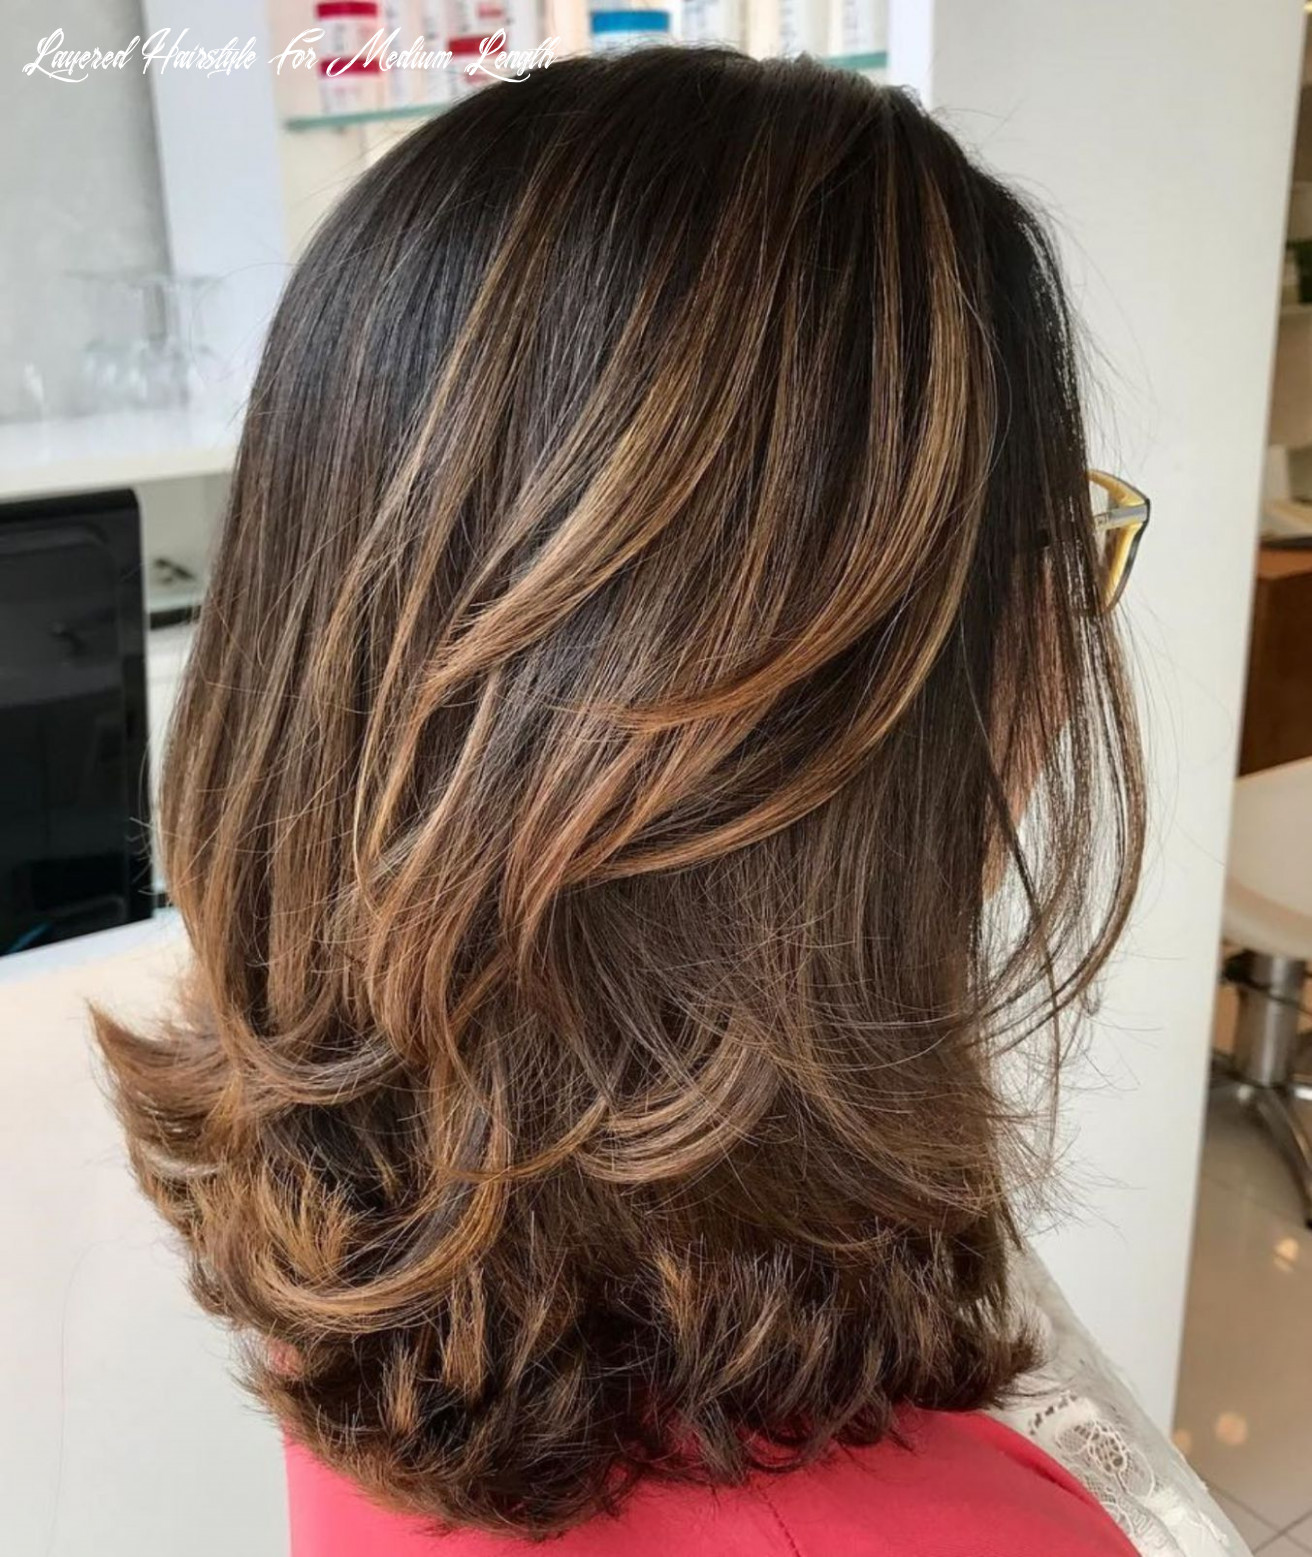 Pin on her layered hairstyle for medium length